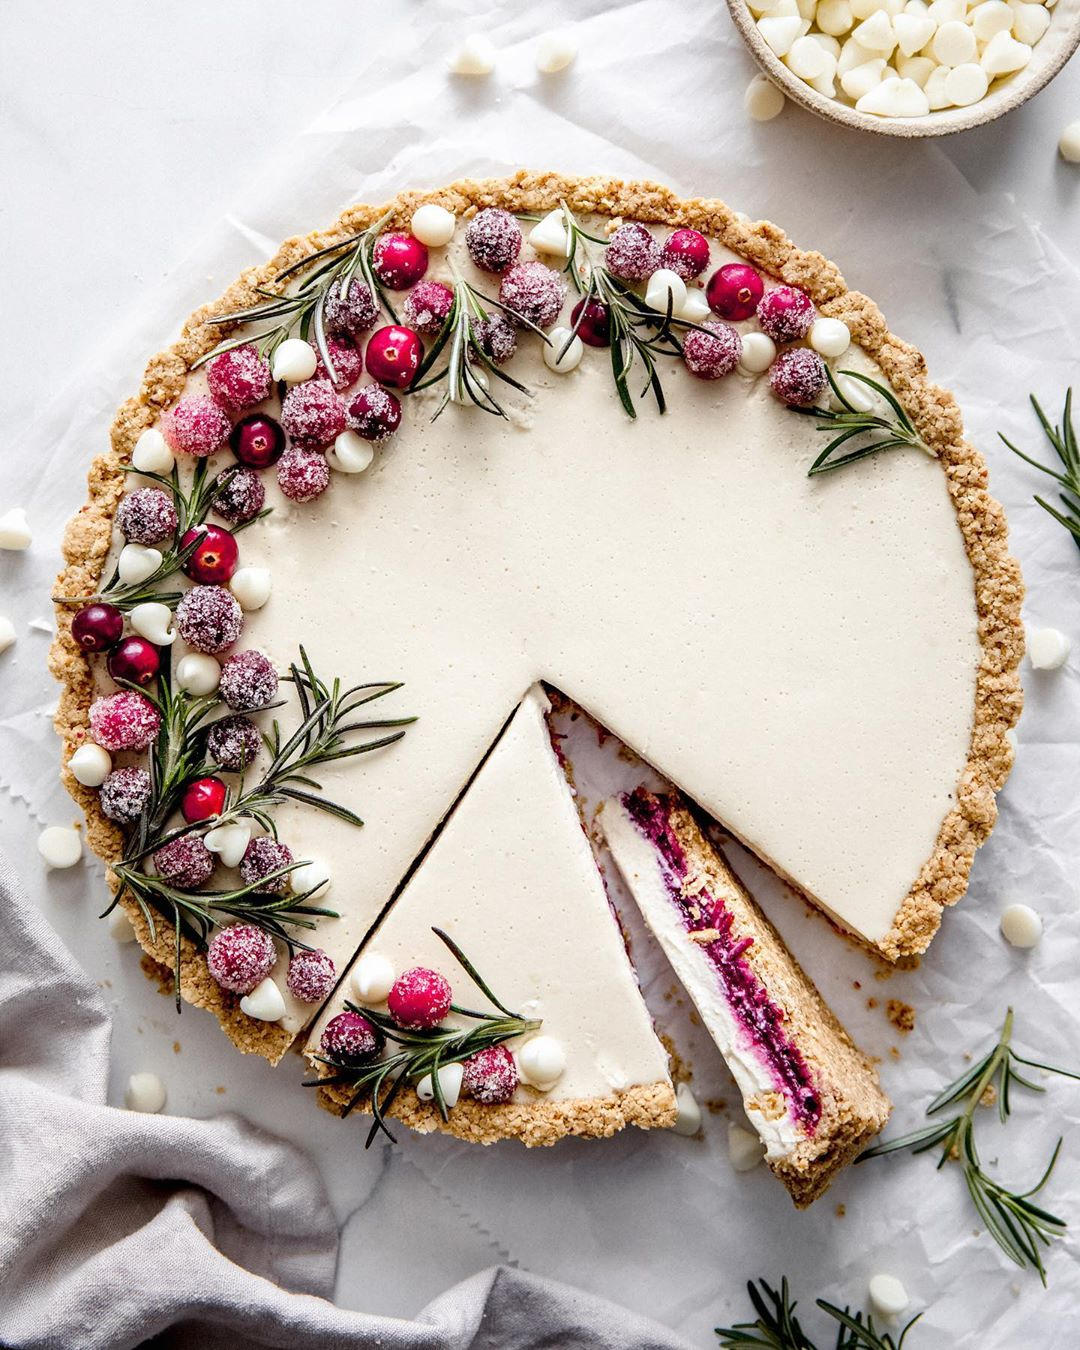 Intimate Wedding Dessert